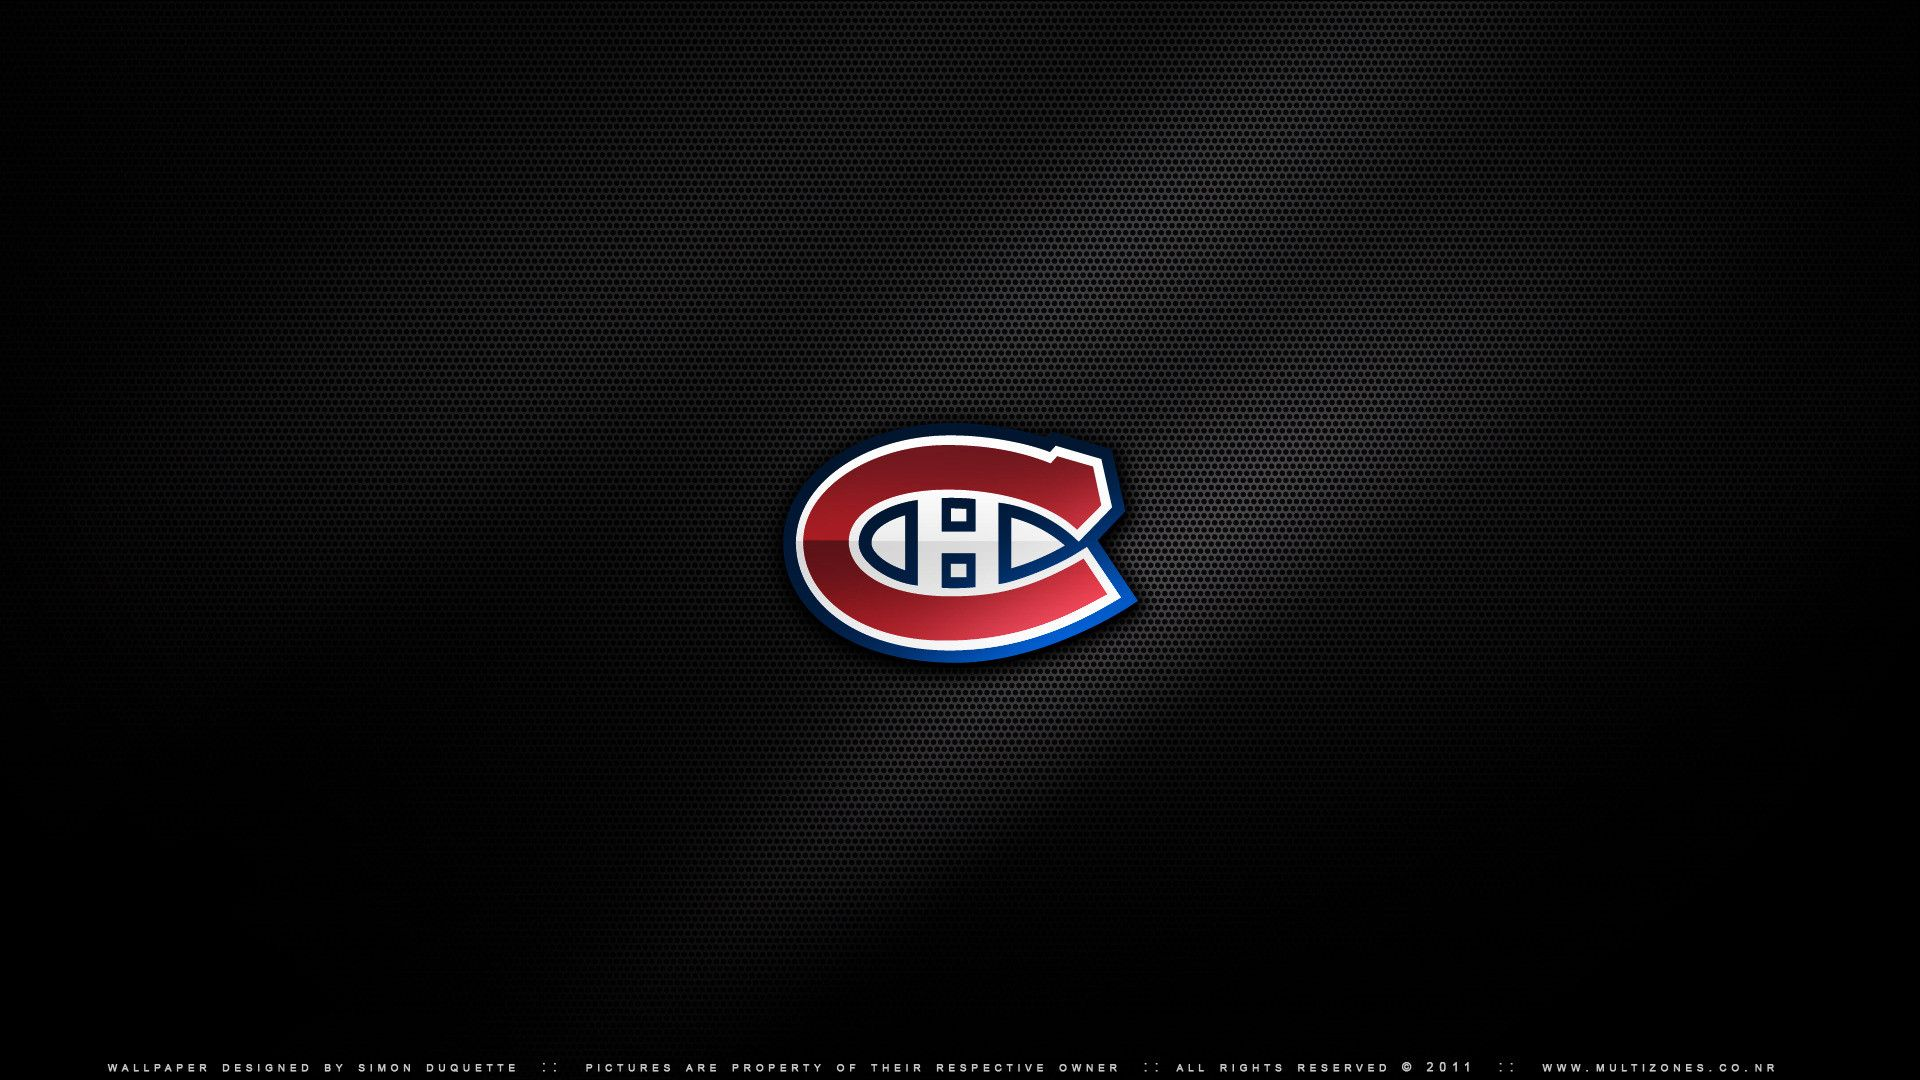 1920x1080 - Montreal Canadiens Wallpapers 6